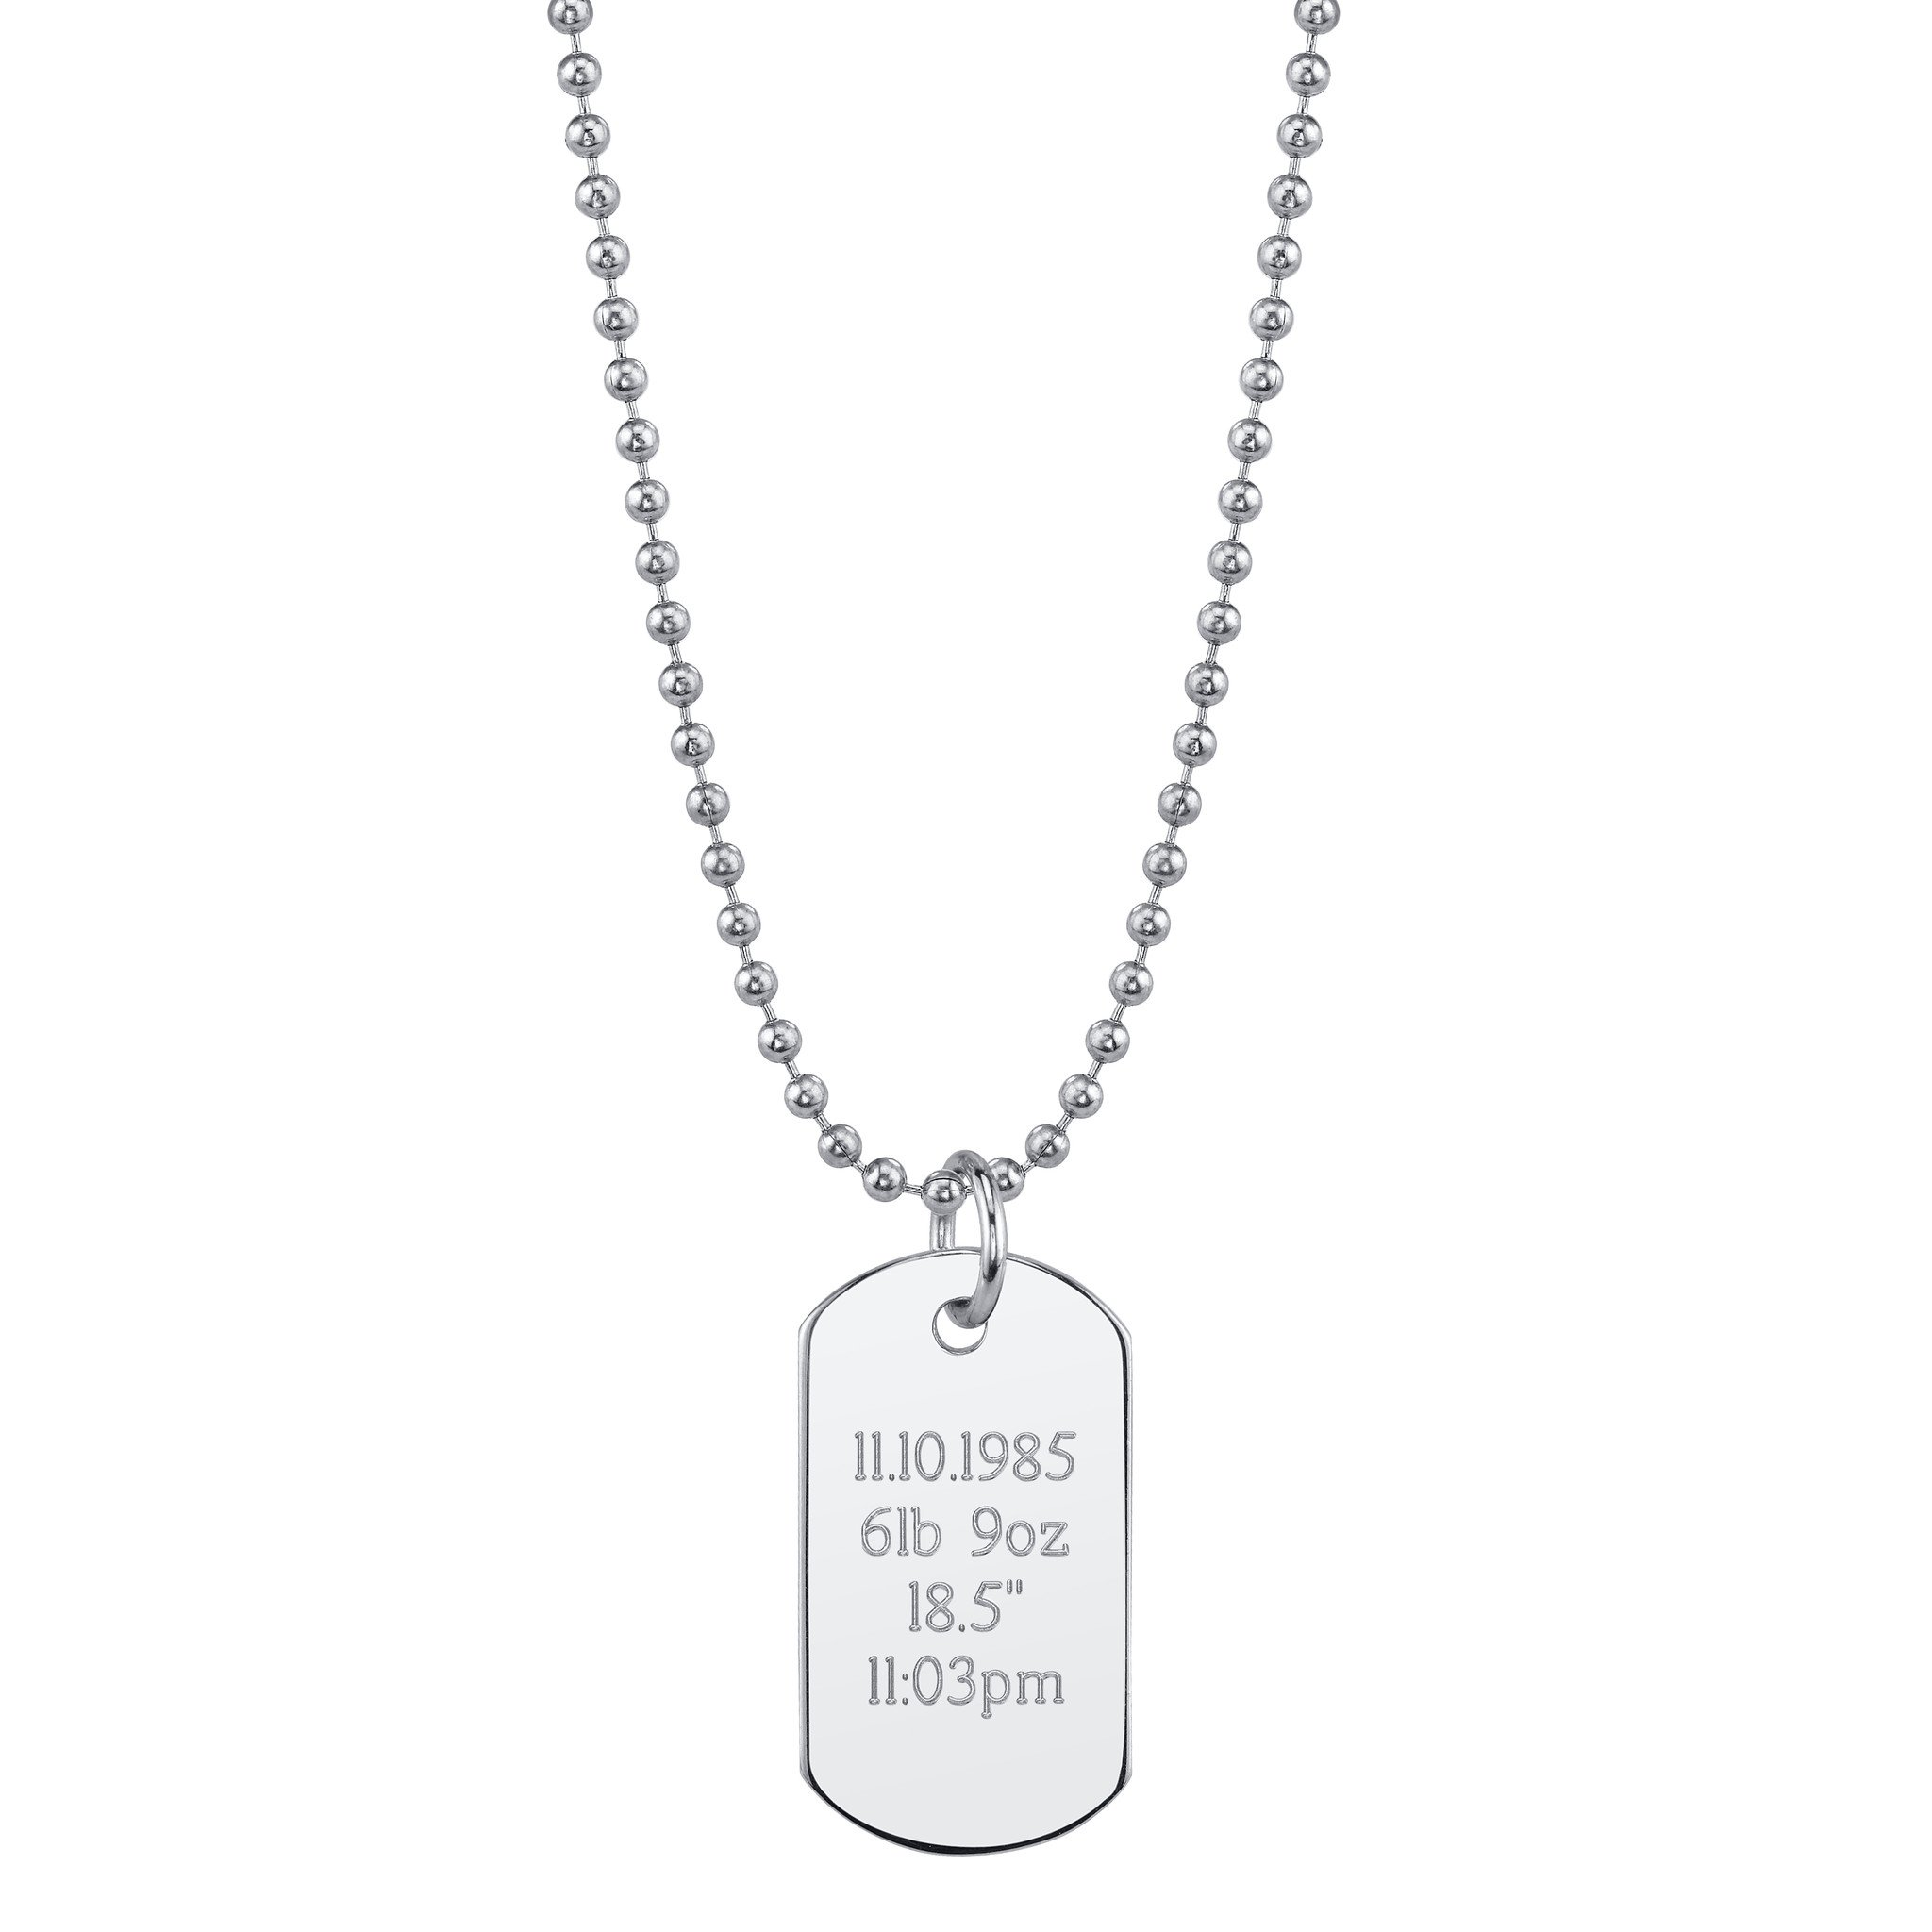 2048x2048 Mini Dog Tag Necklace Pink Amp Blue Co.